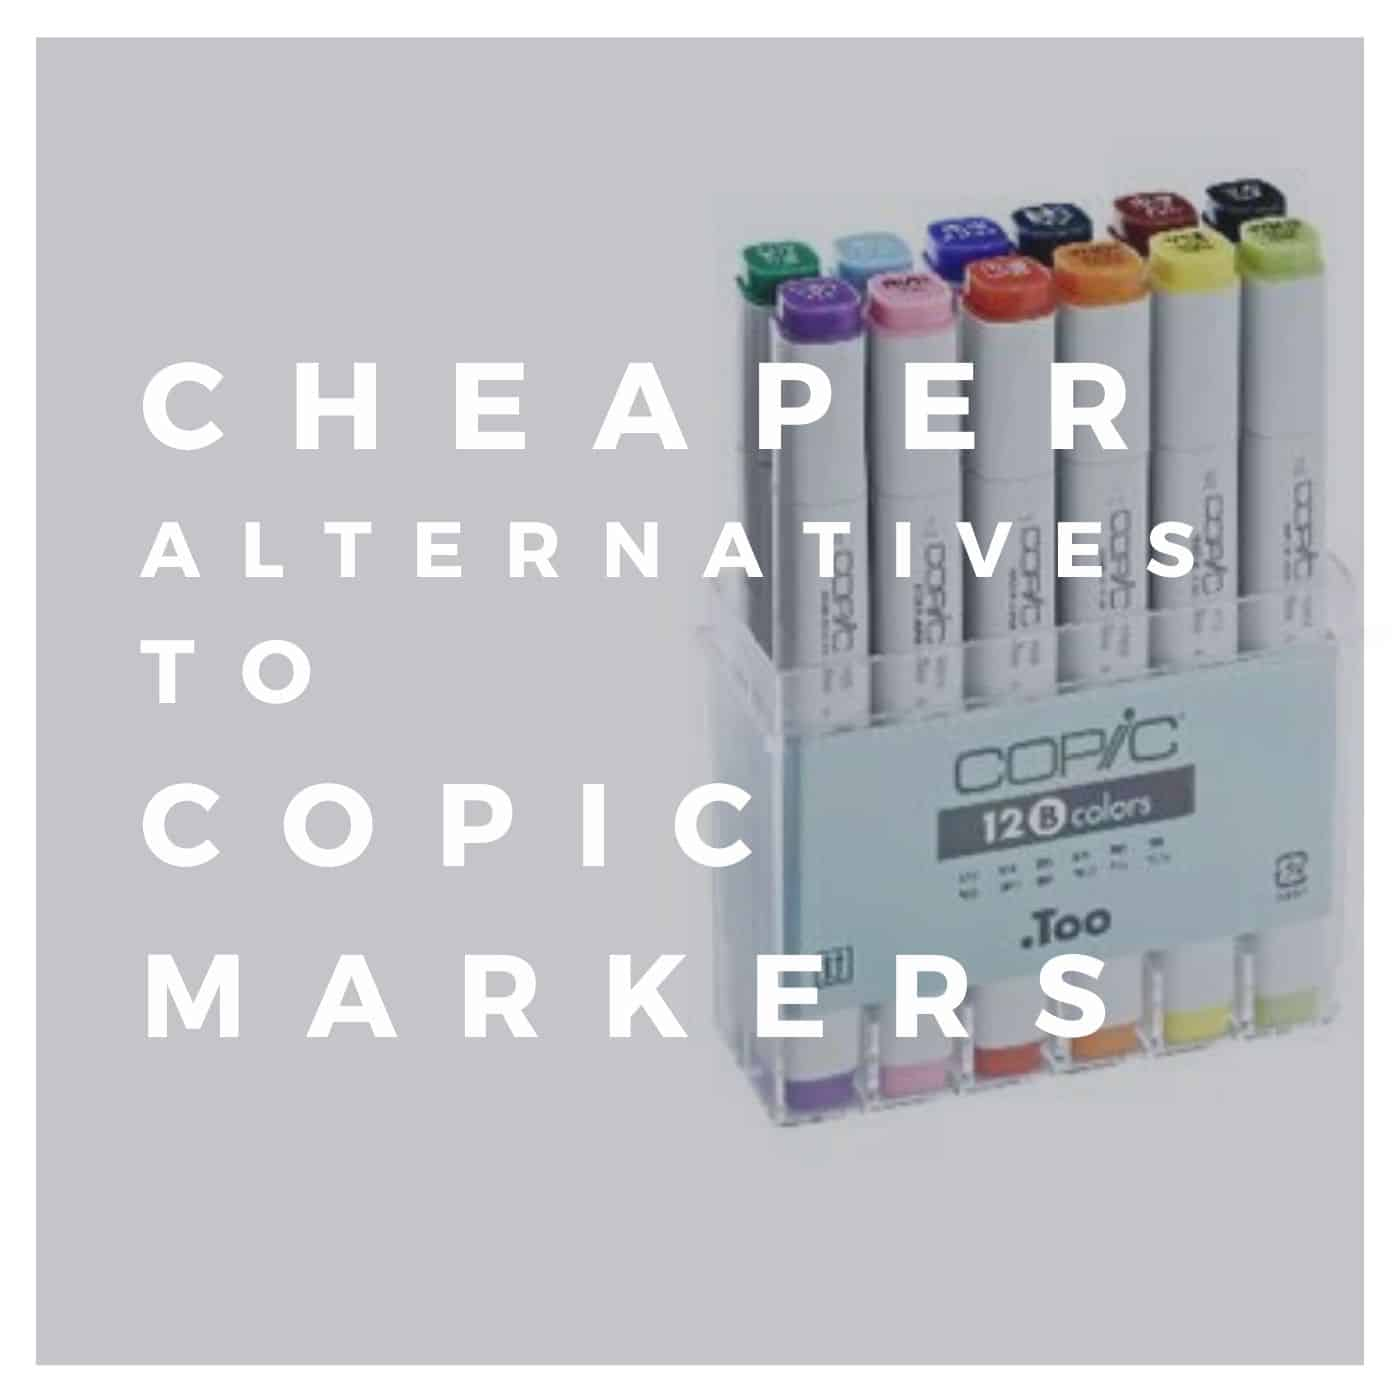 Cheaper alternatives to copic markers